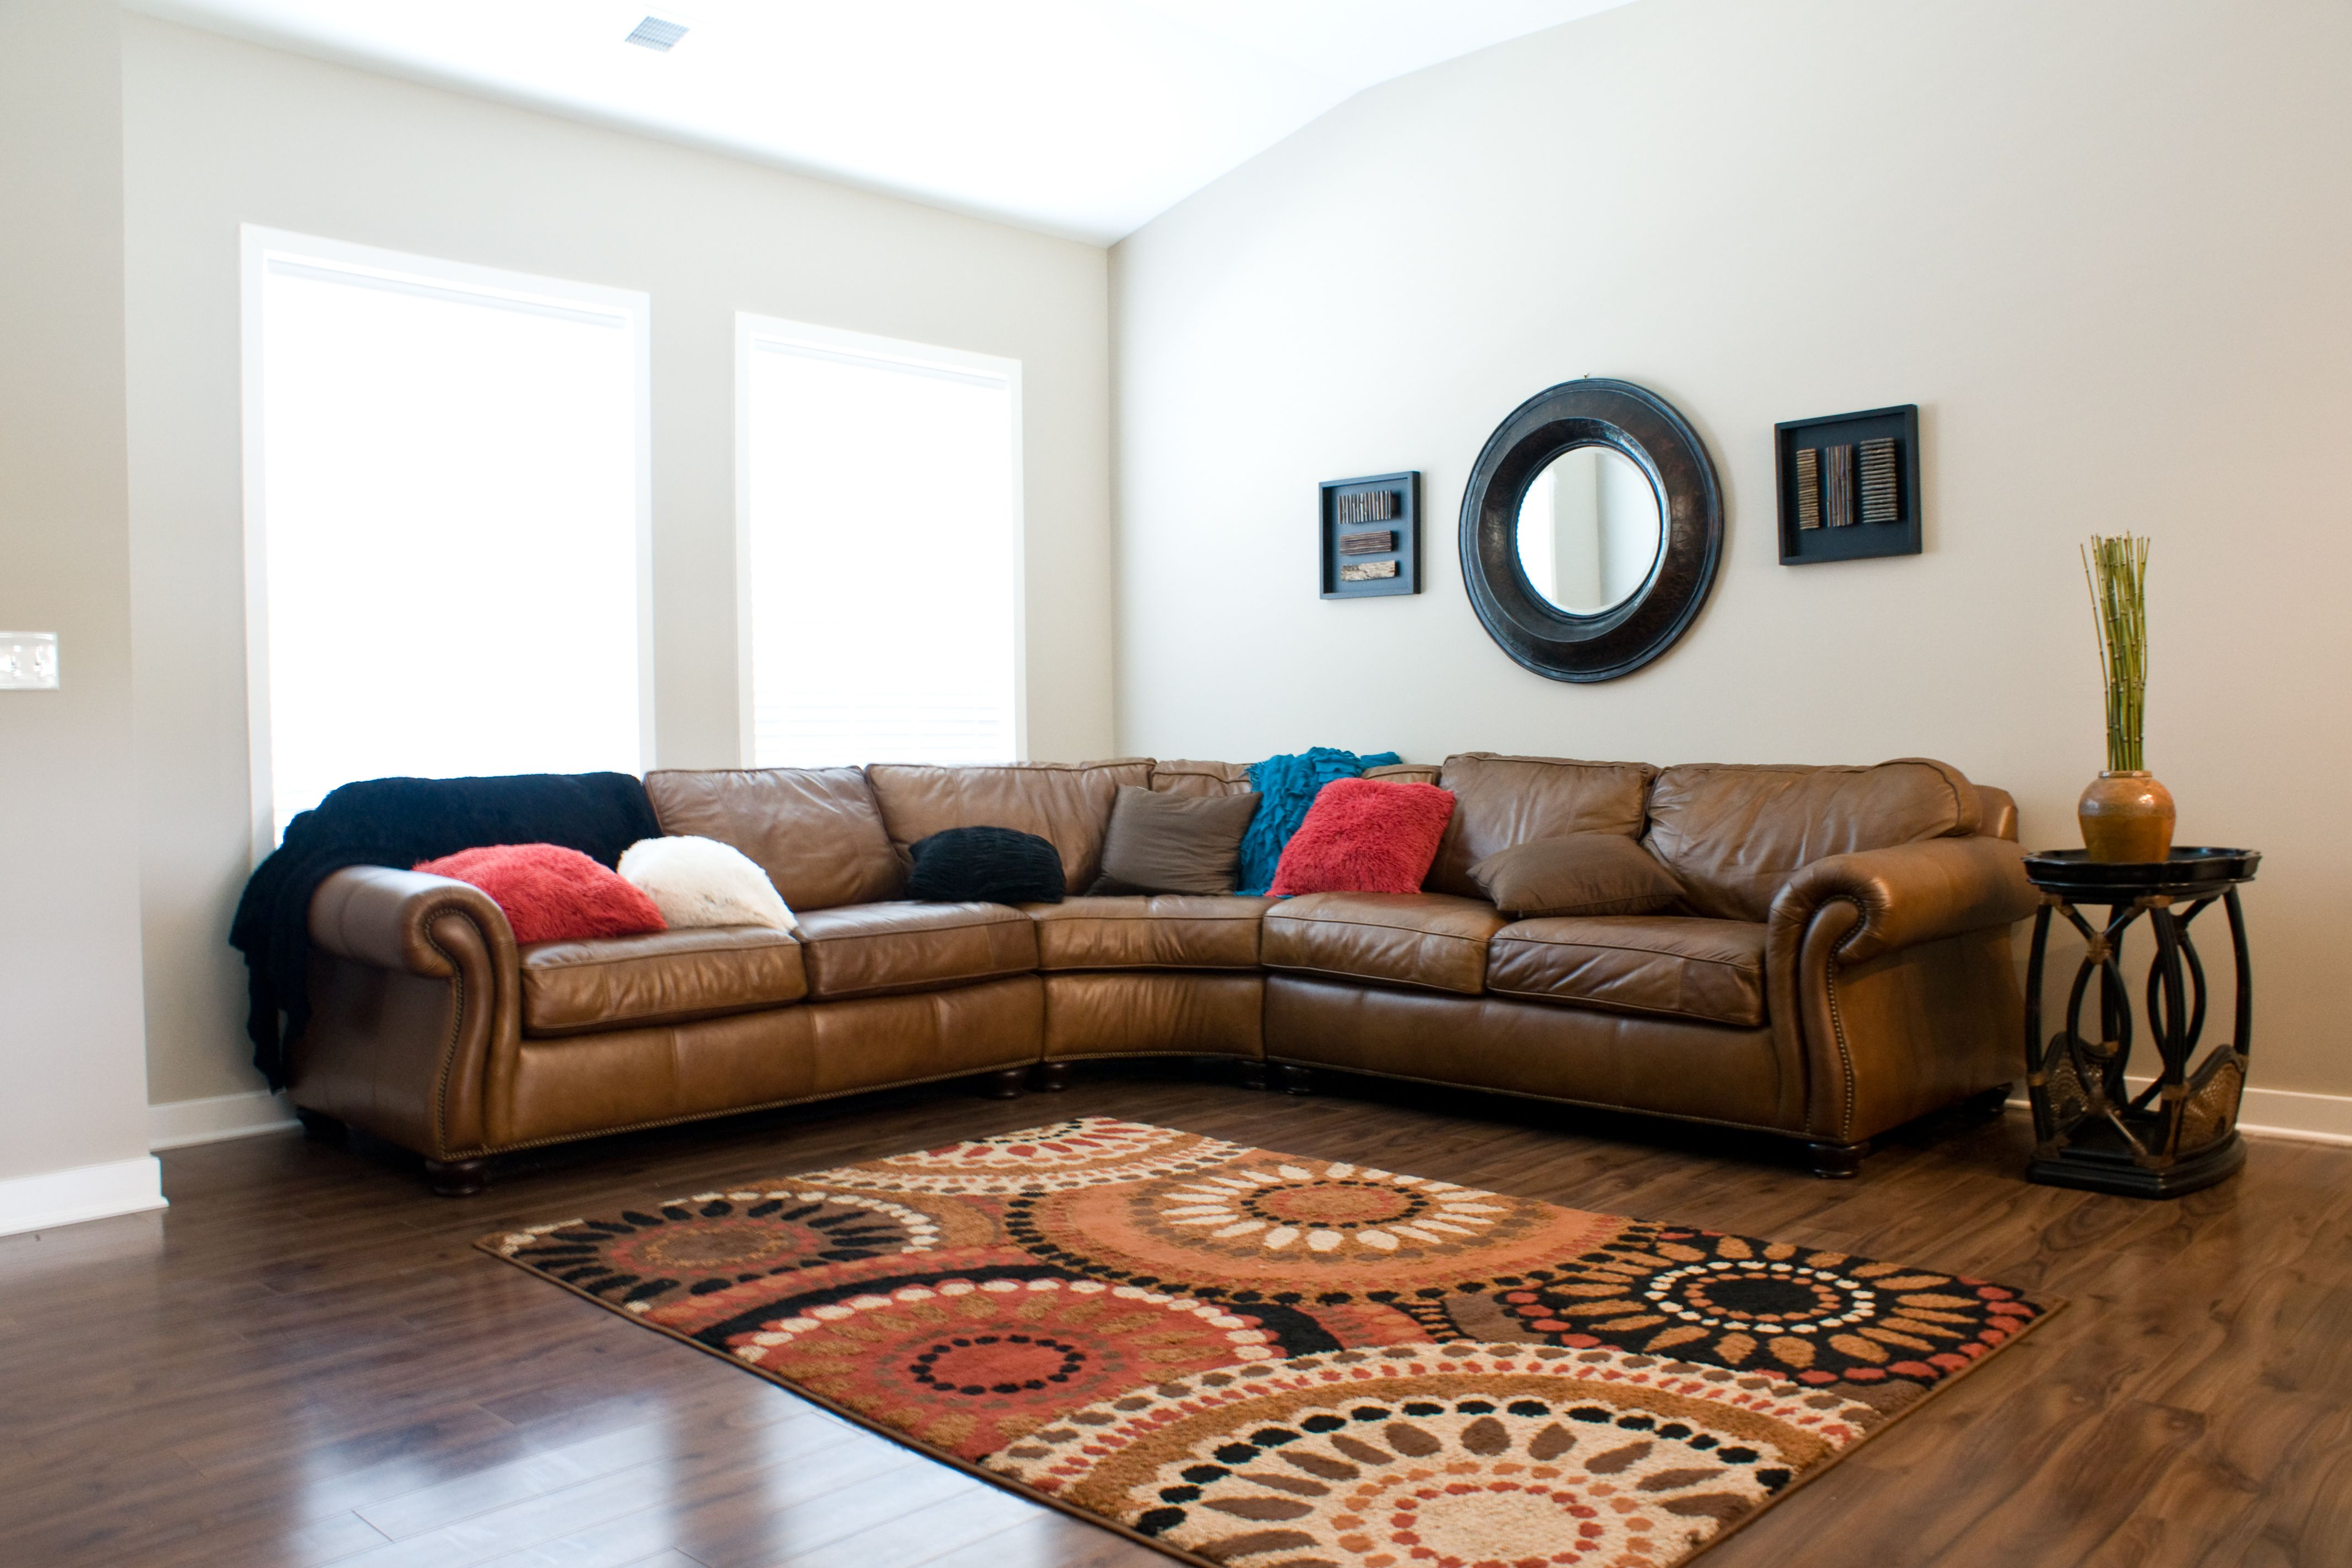 The living room of the Coventry II floor plan by Ball Homes.